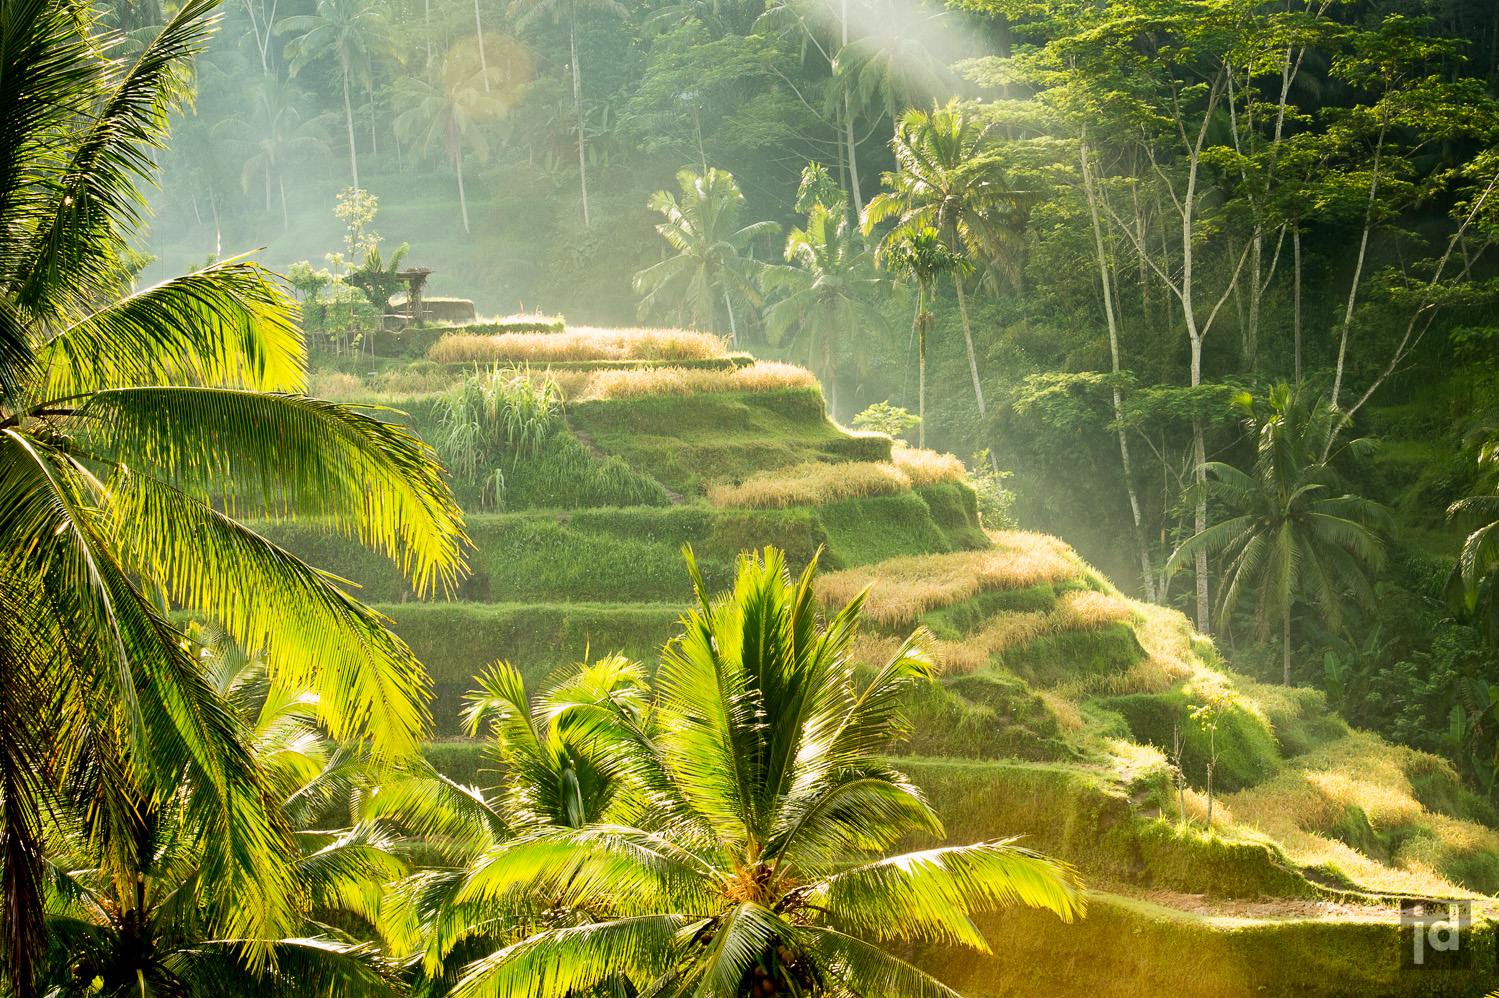 Bali_Indonesia_Photography_Jason_Davis_Images_029.jpg